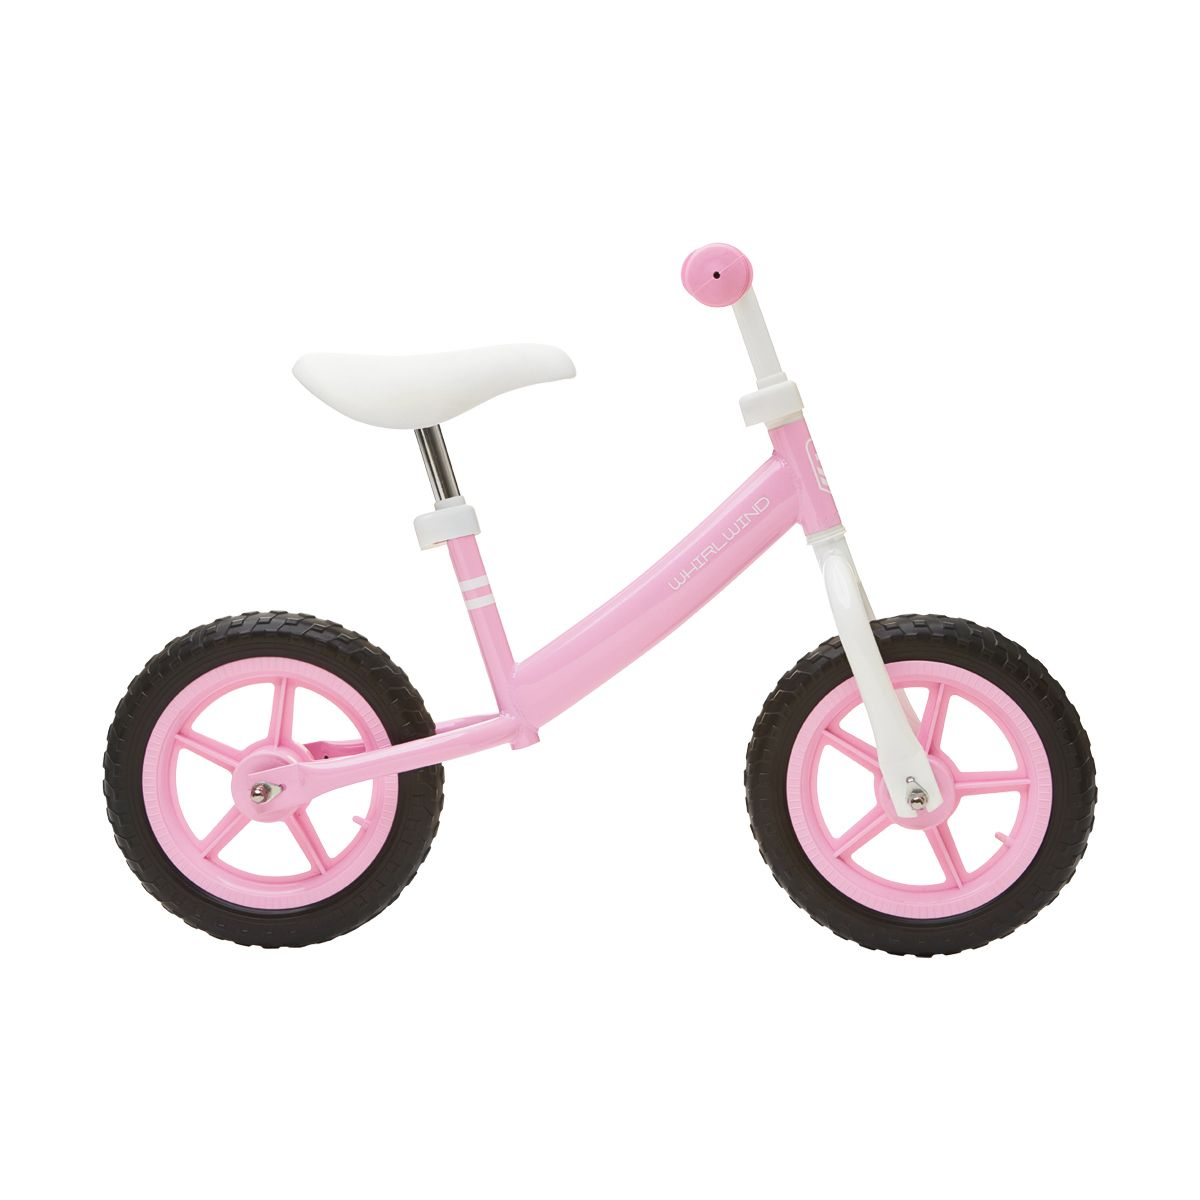 Pink 28cm Whirlwind Balance Bike Kmart Outdoor Toys For Kids